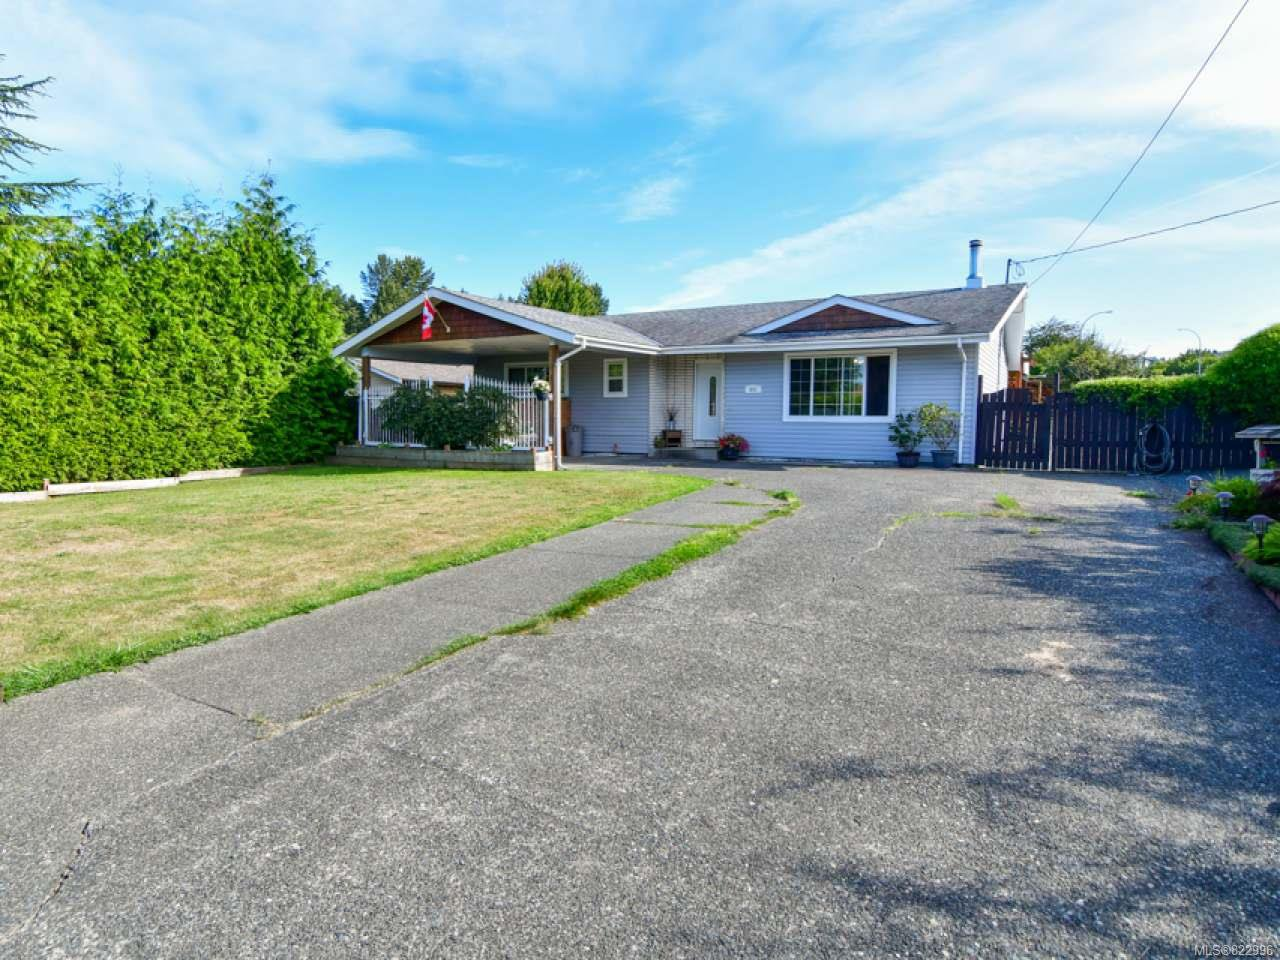 Photo 42: Photos: 691 Holm Rd in CAMPBELL RIVER: CR Willow Point House for sale (Campbell River)  : MLS®# 822996